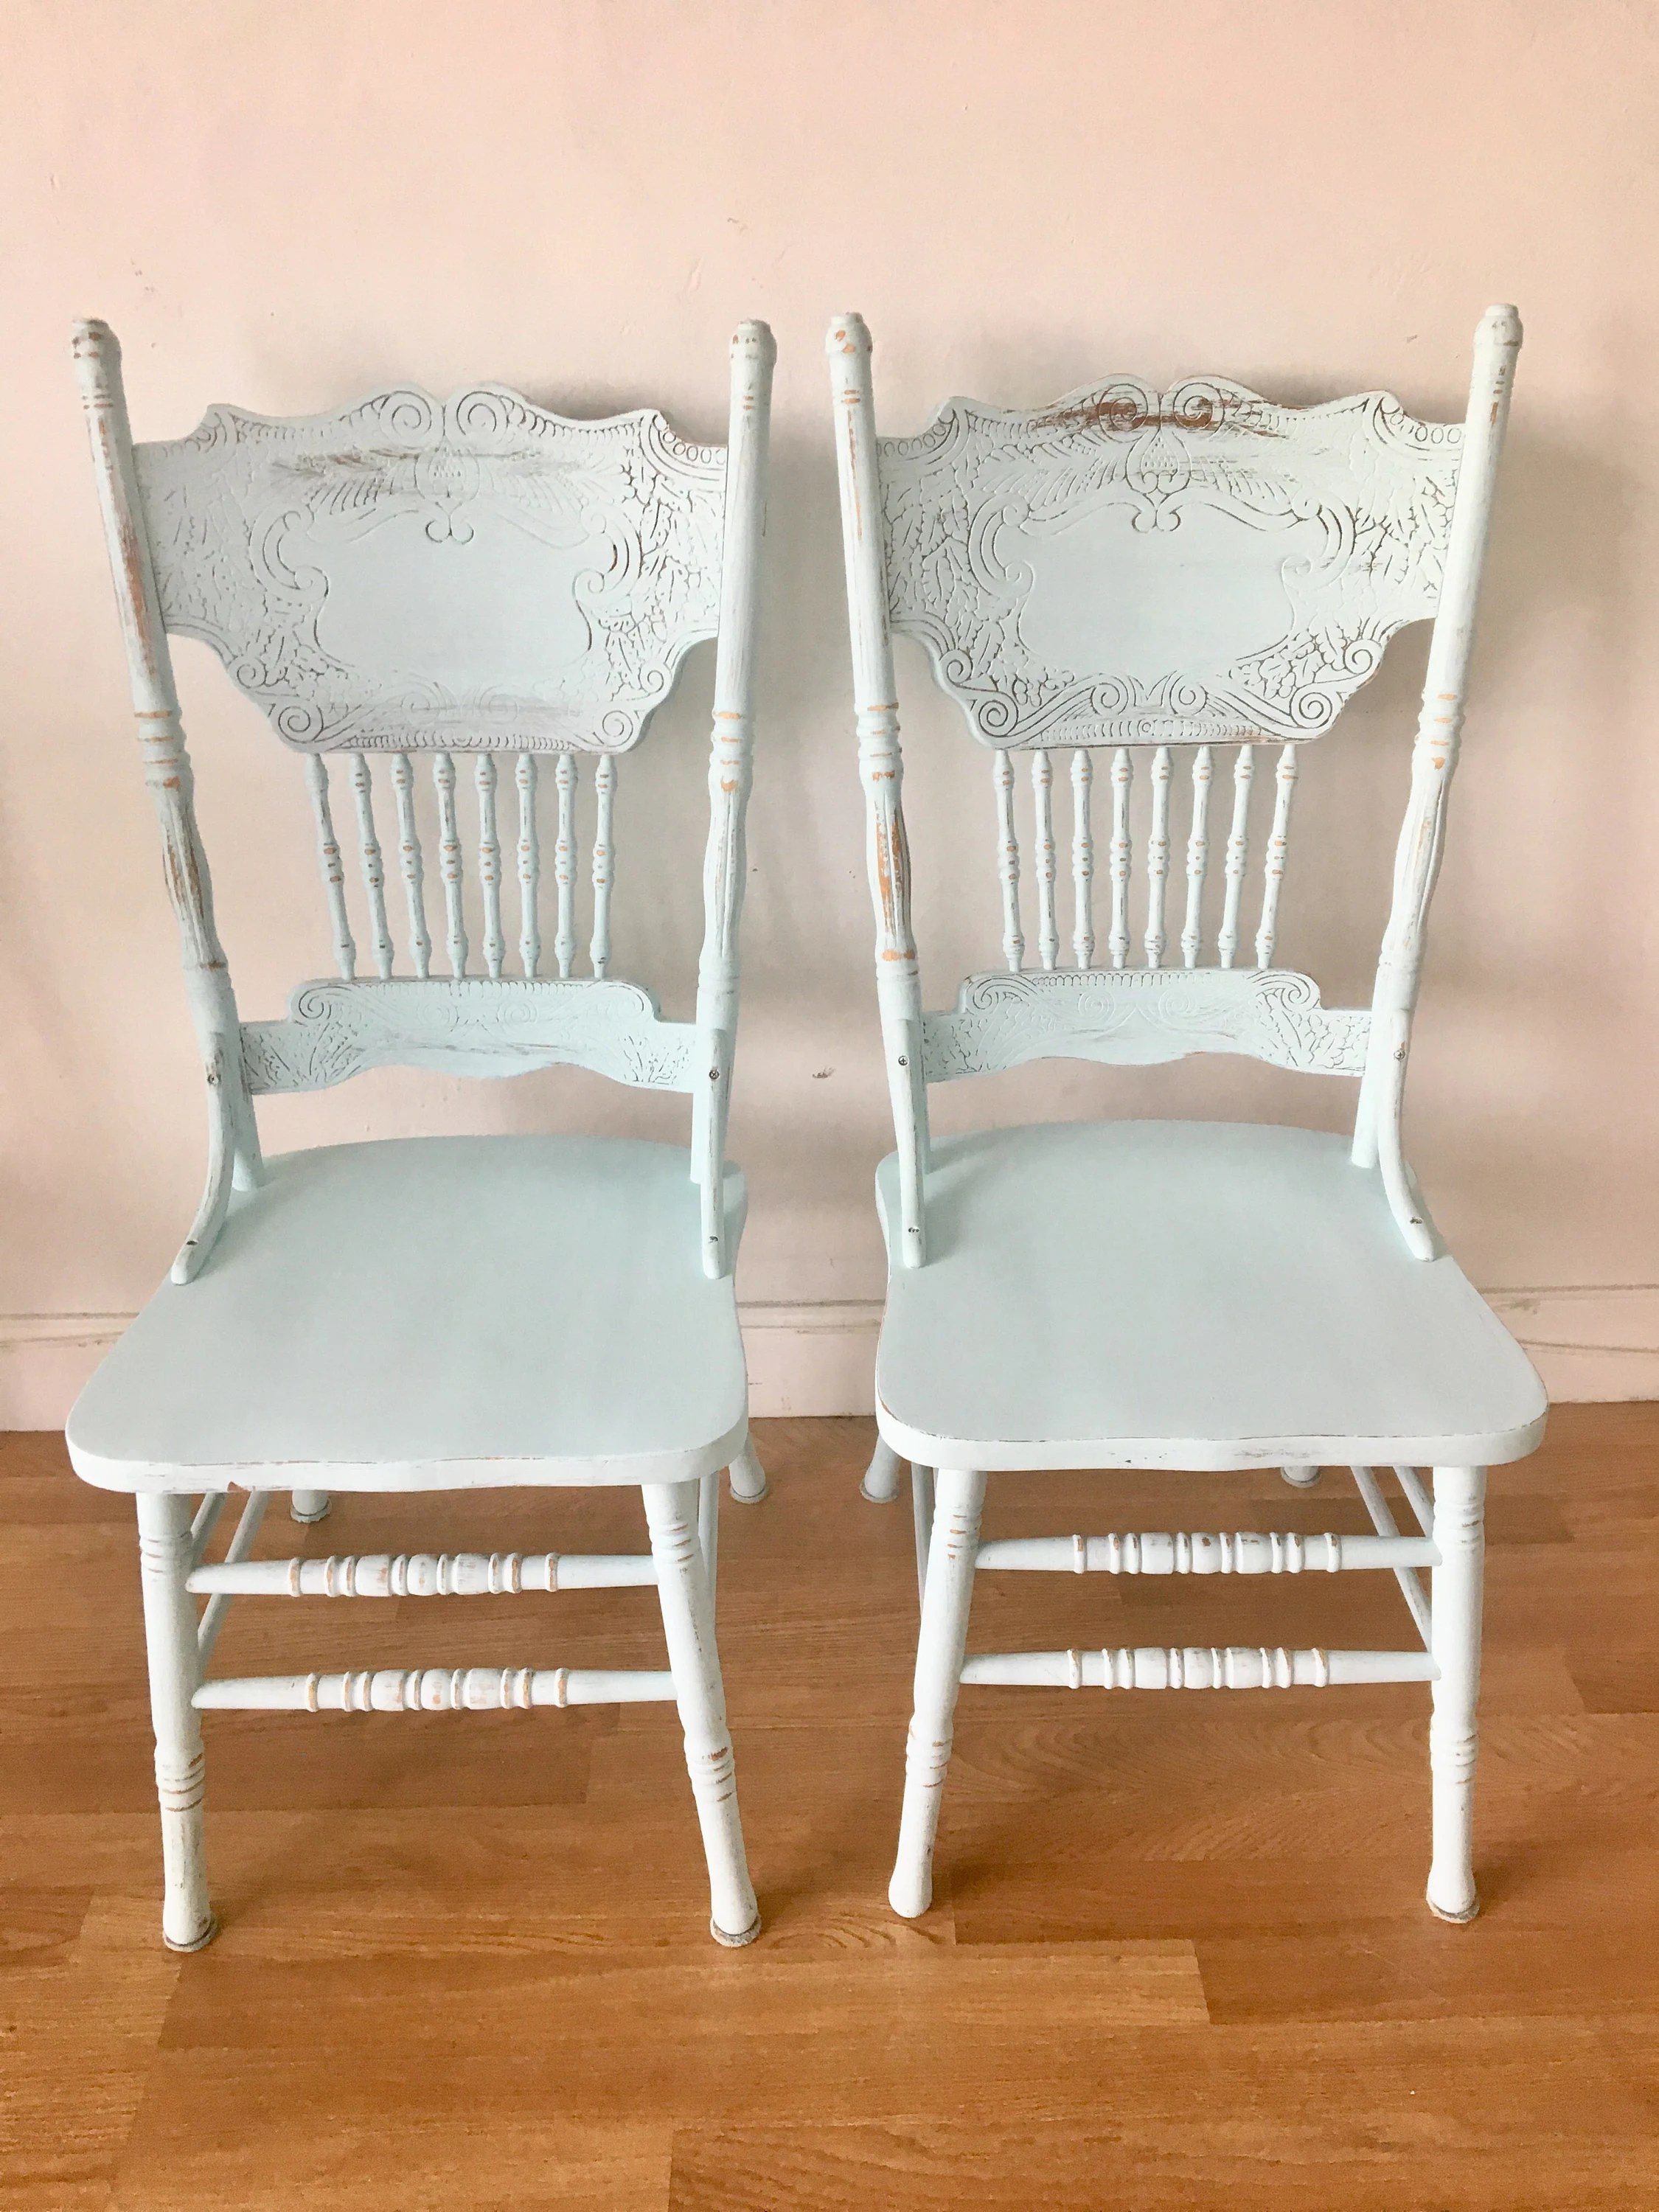 Refurbished Chairs Refurbished Farmhouse Shabby Chic Dining Chairs Custom Colors Available